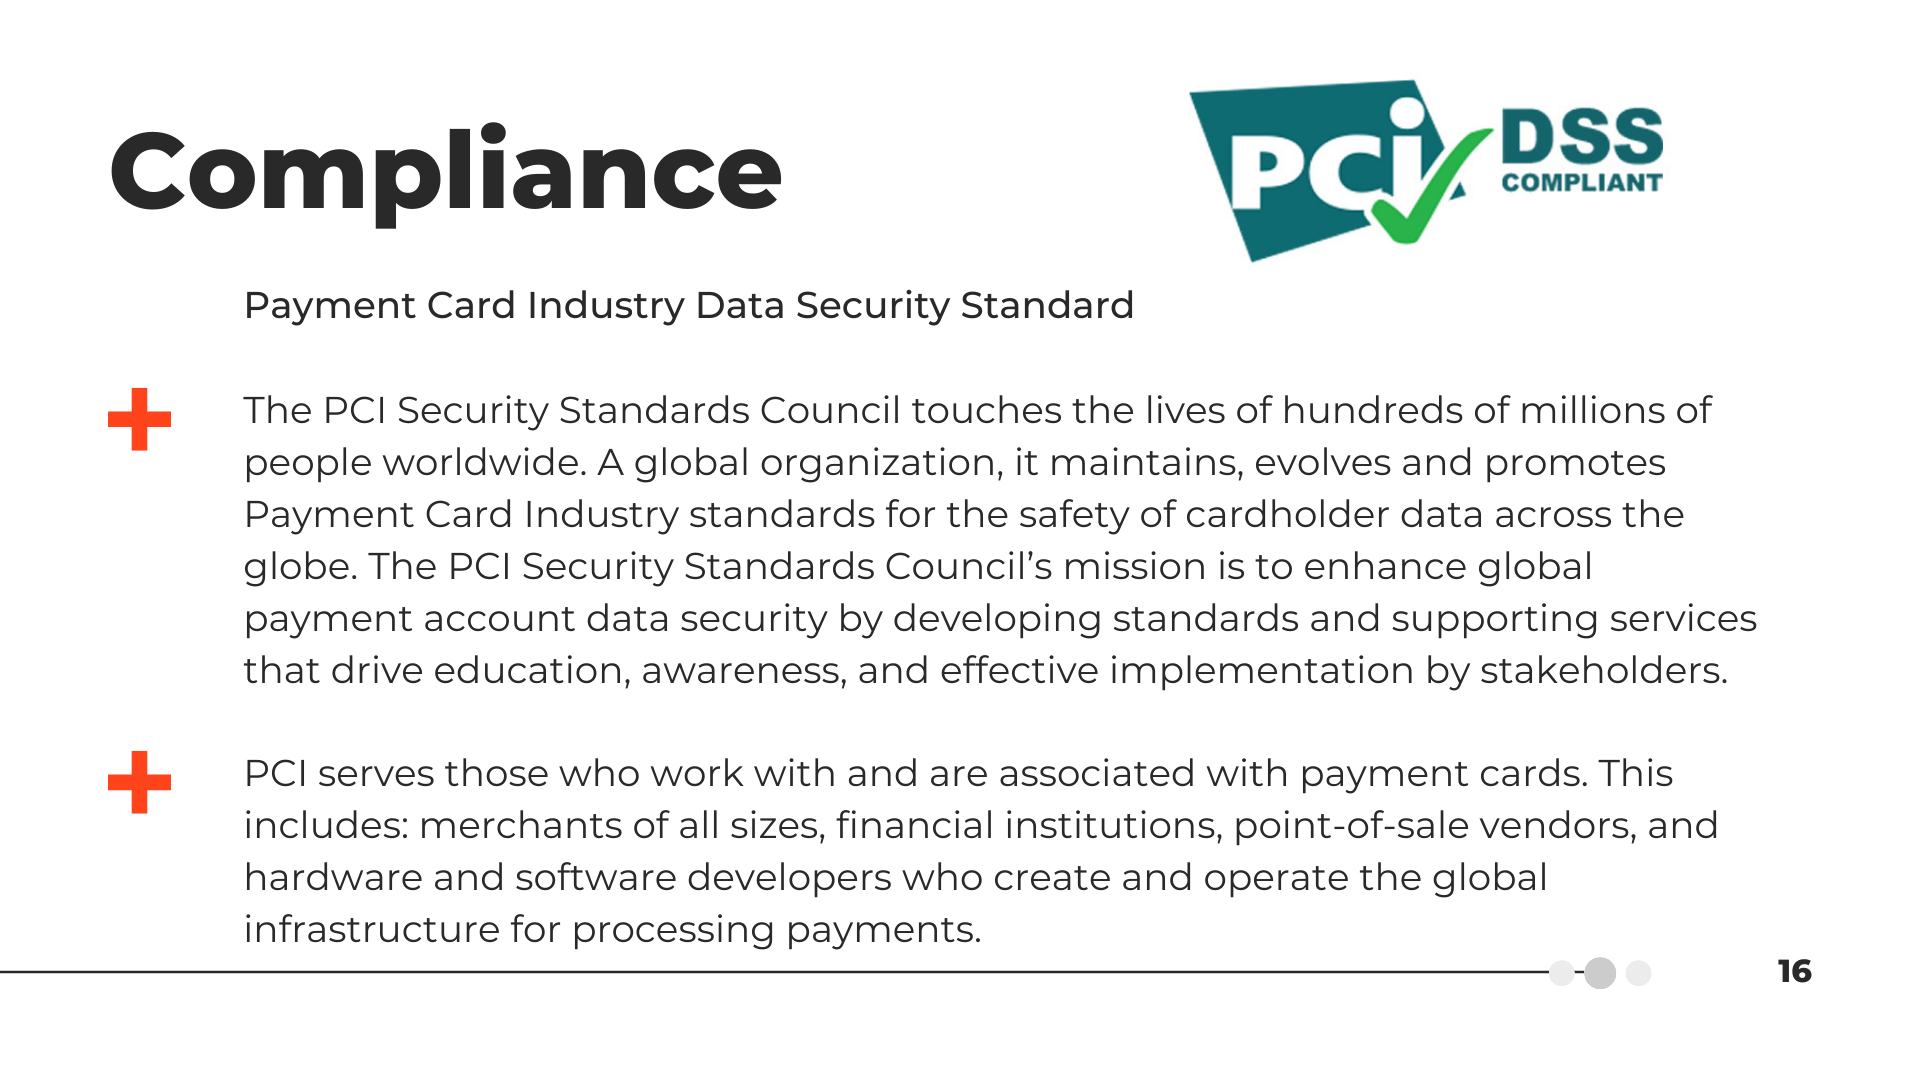 Compliance | Payment Card Industry Data Security Standard - The PCI Security Standards Council touches the lives of hundreds of millions of people worldwide. A global organization, it maintains, evolves, and promotes Payment Card Industry standards for the safety of cardholder data across the globe. The PCI Security Standards Council's mission is to enhance global payment account data security by developing standards and supporting services that drive education, awareness, and effective implementation by stakeholders. | PCI serves those who work with and are associated with payment cards. This includes: merchants of all sizes, financial institutions, point-of-sale vendors, and hardware and software developers who create and operate the global infrastructure for processing payments.